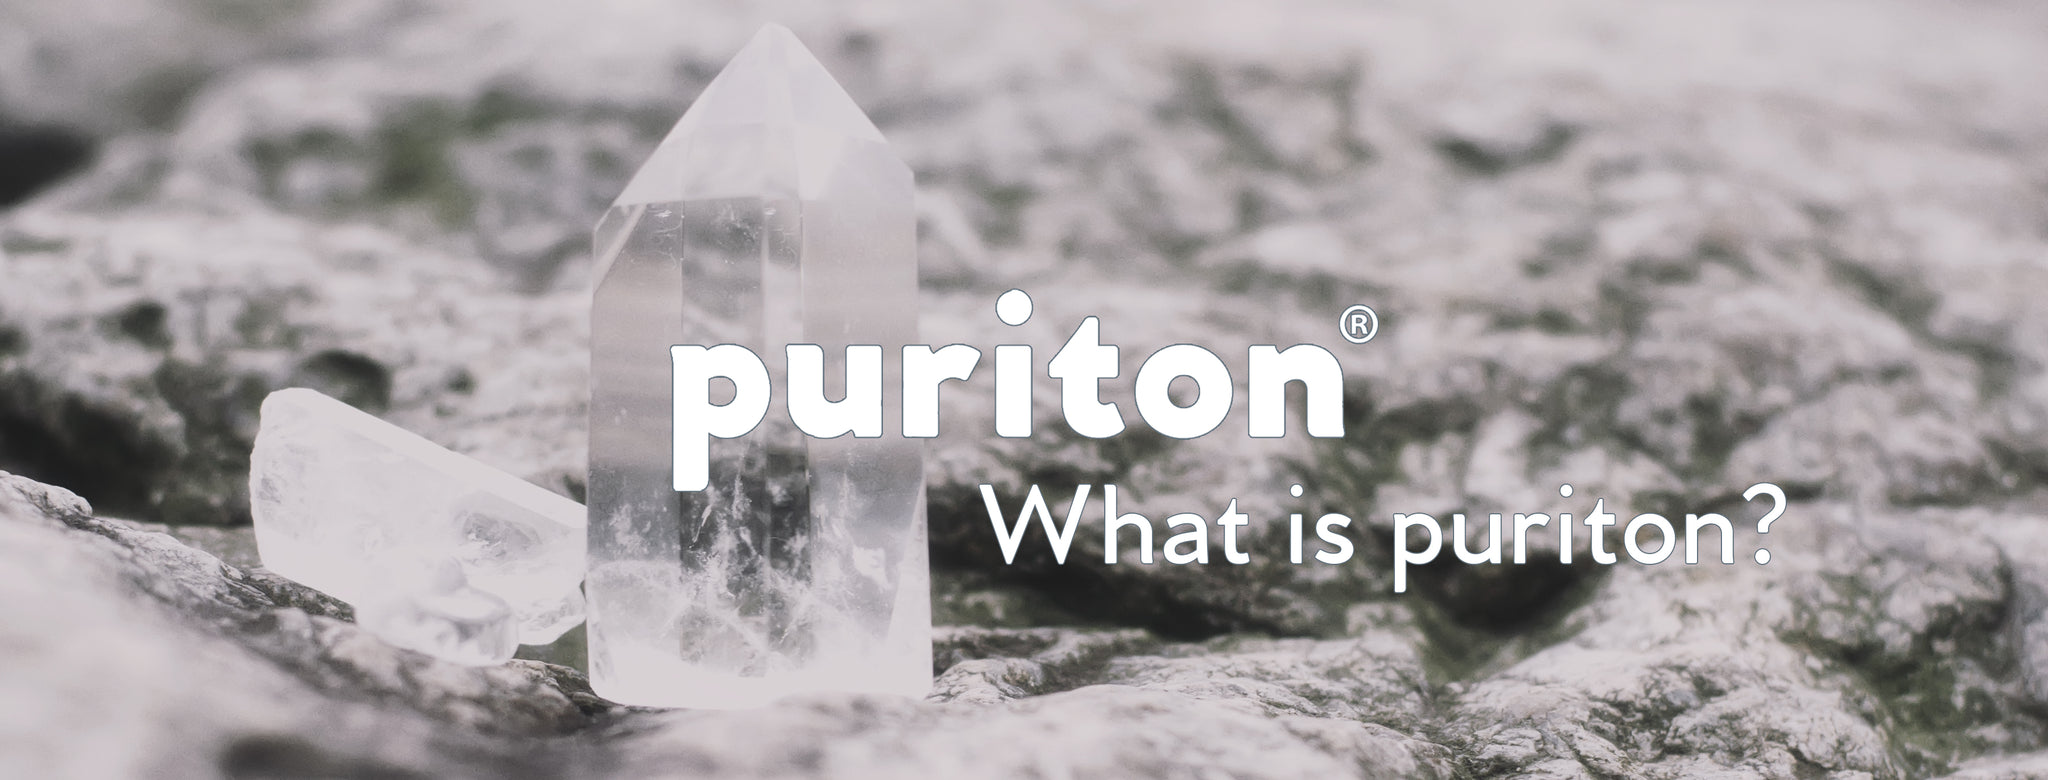 Puriton mineral Water